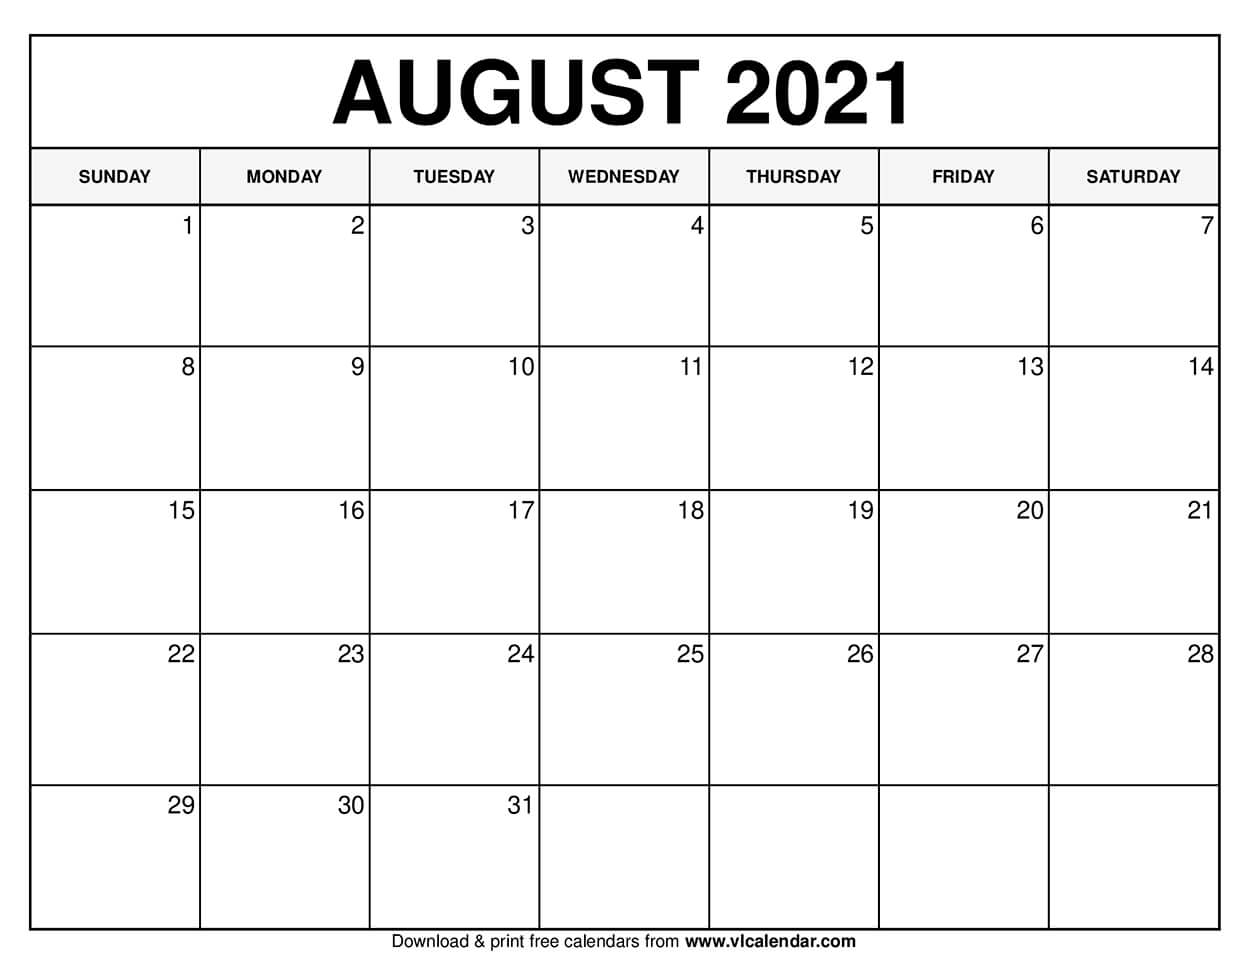 Take August 2021 Calendar To Fill In